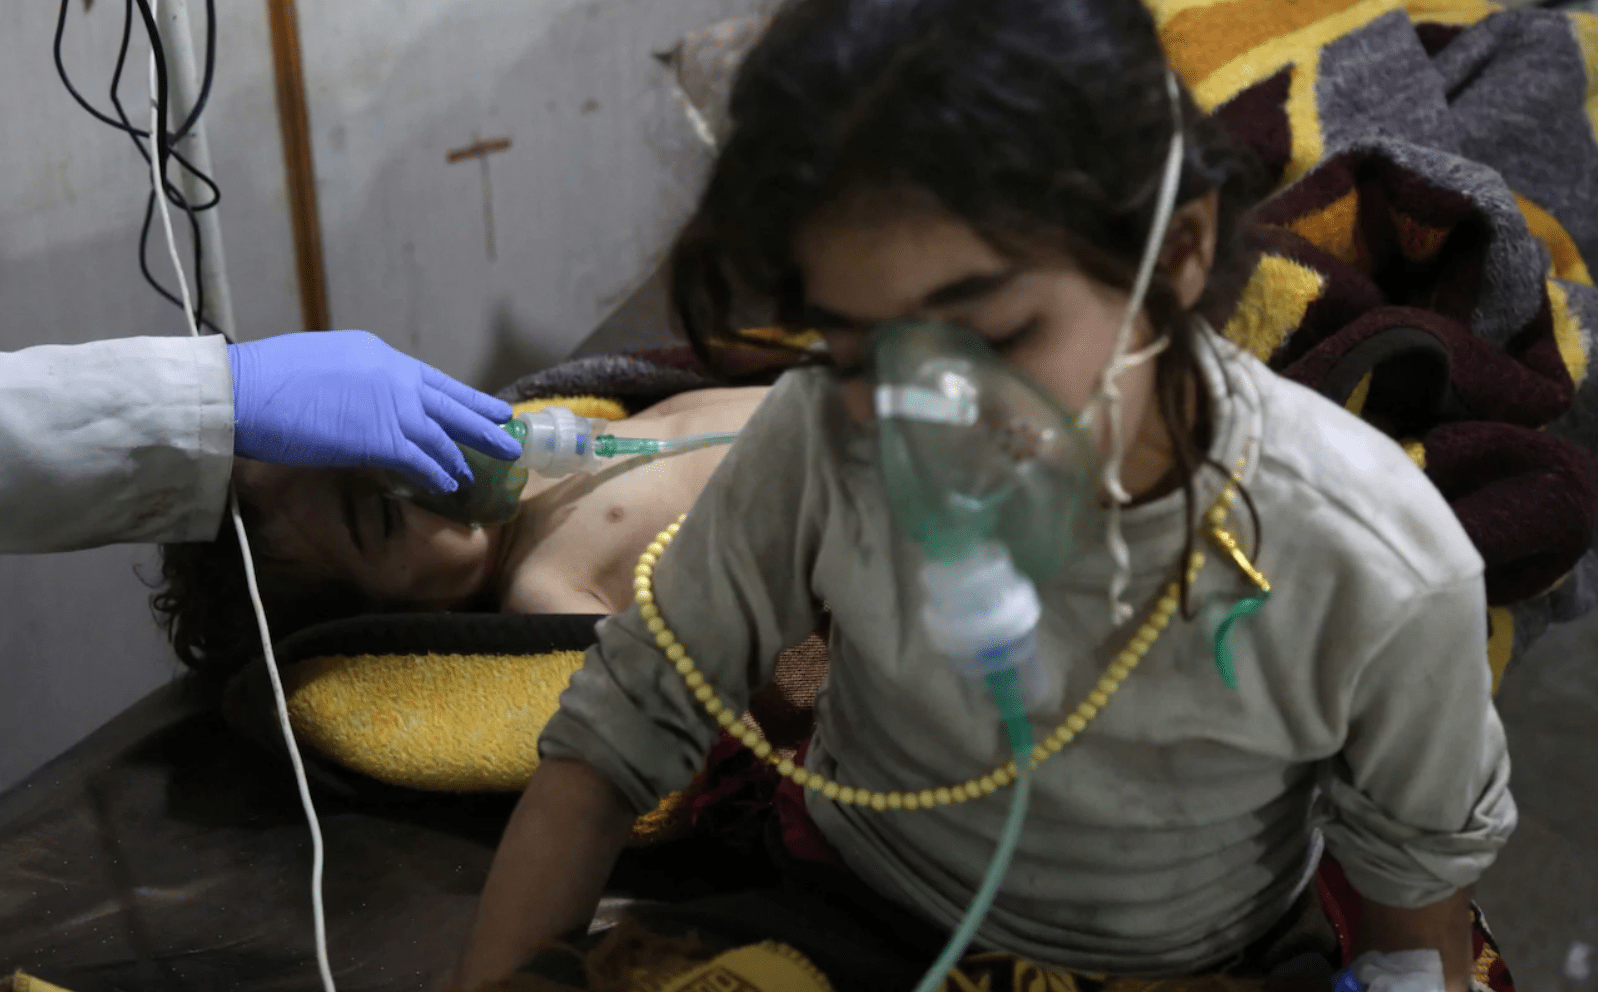 Image Children being treated in Eastern Ghouta, Syria, after the alleged gas attack [Photo: Diaa Al-Din/Syrian American Medical Society]